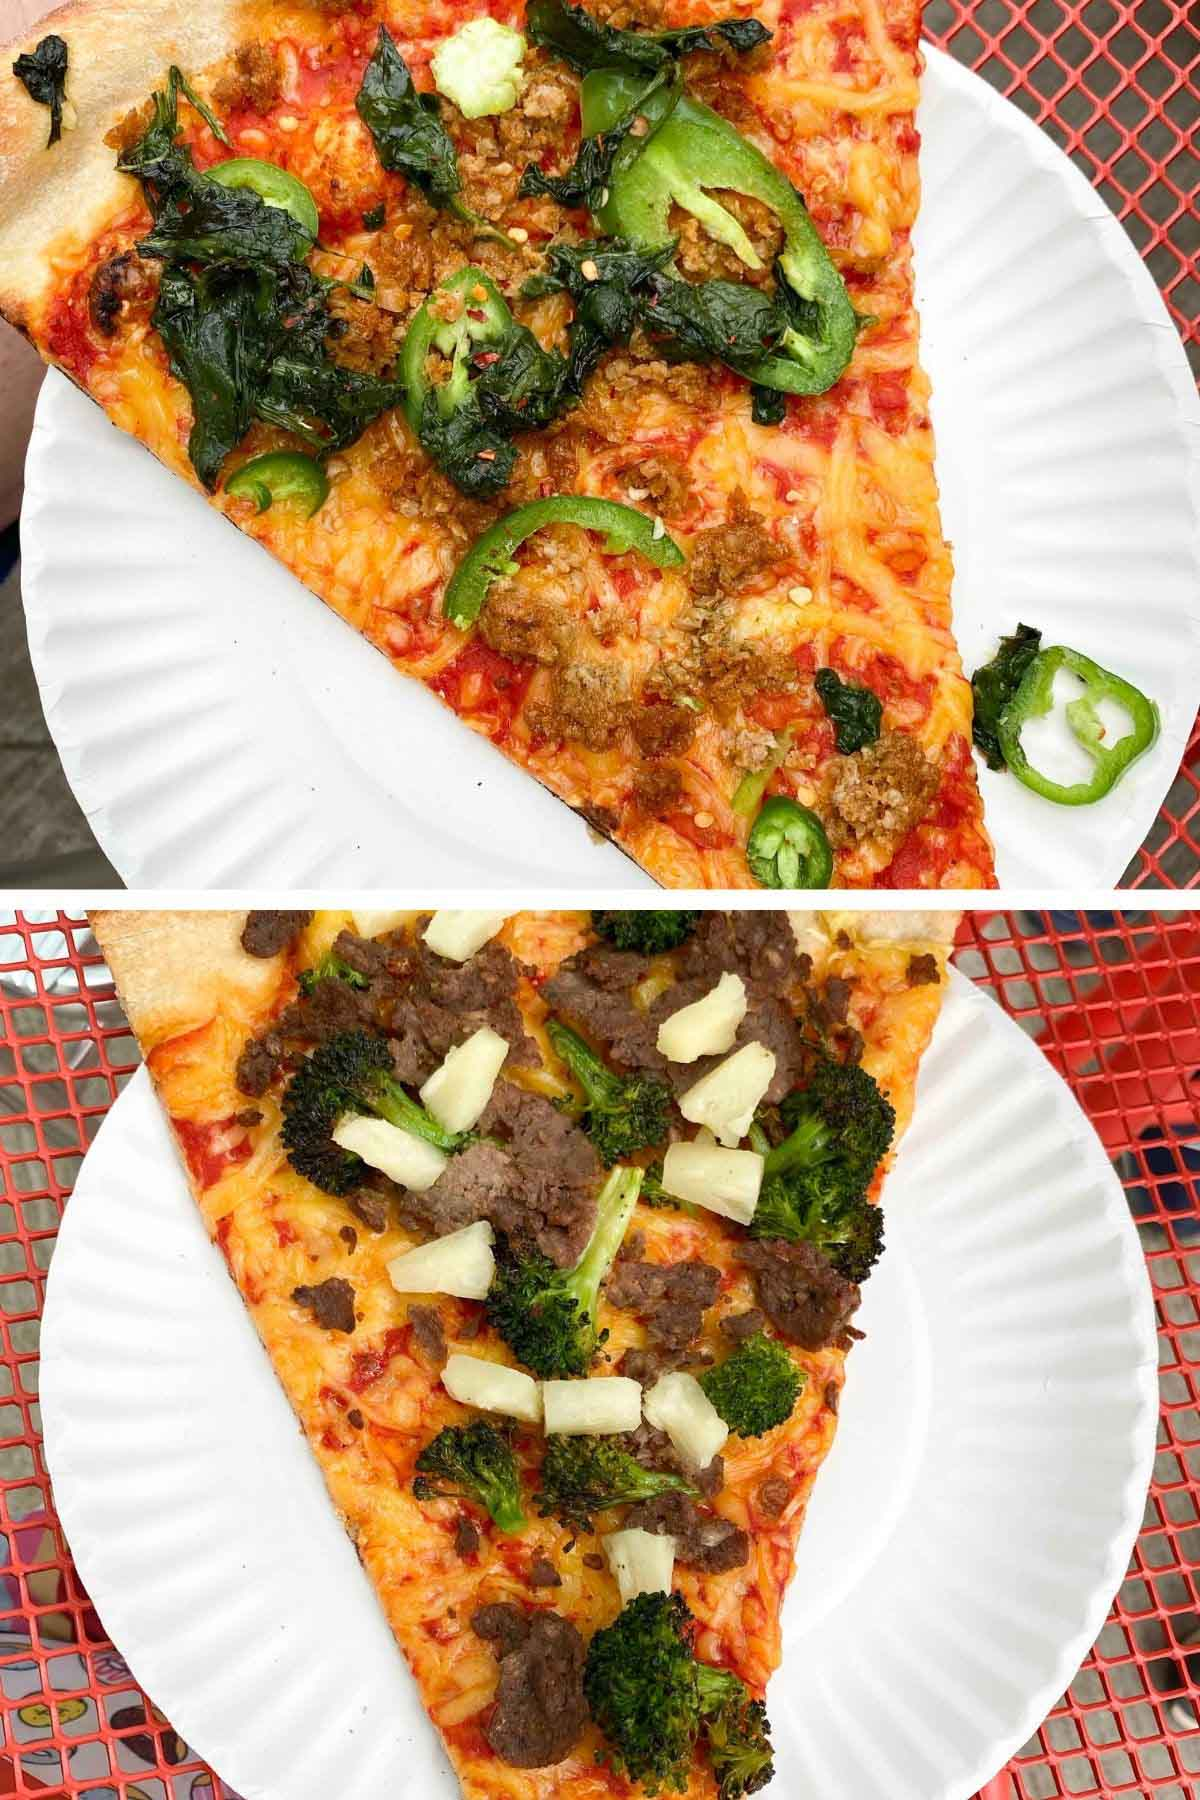 image collage of two vegan pizza slices on a red table